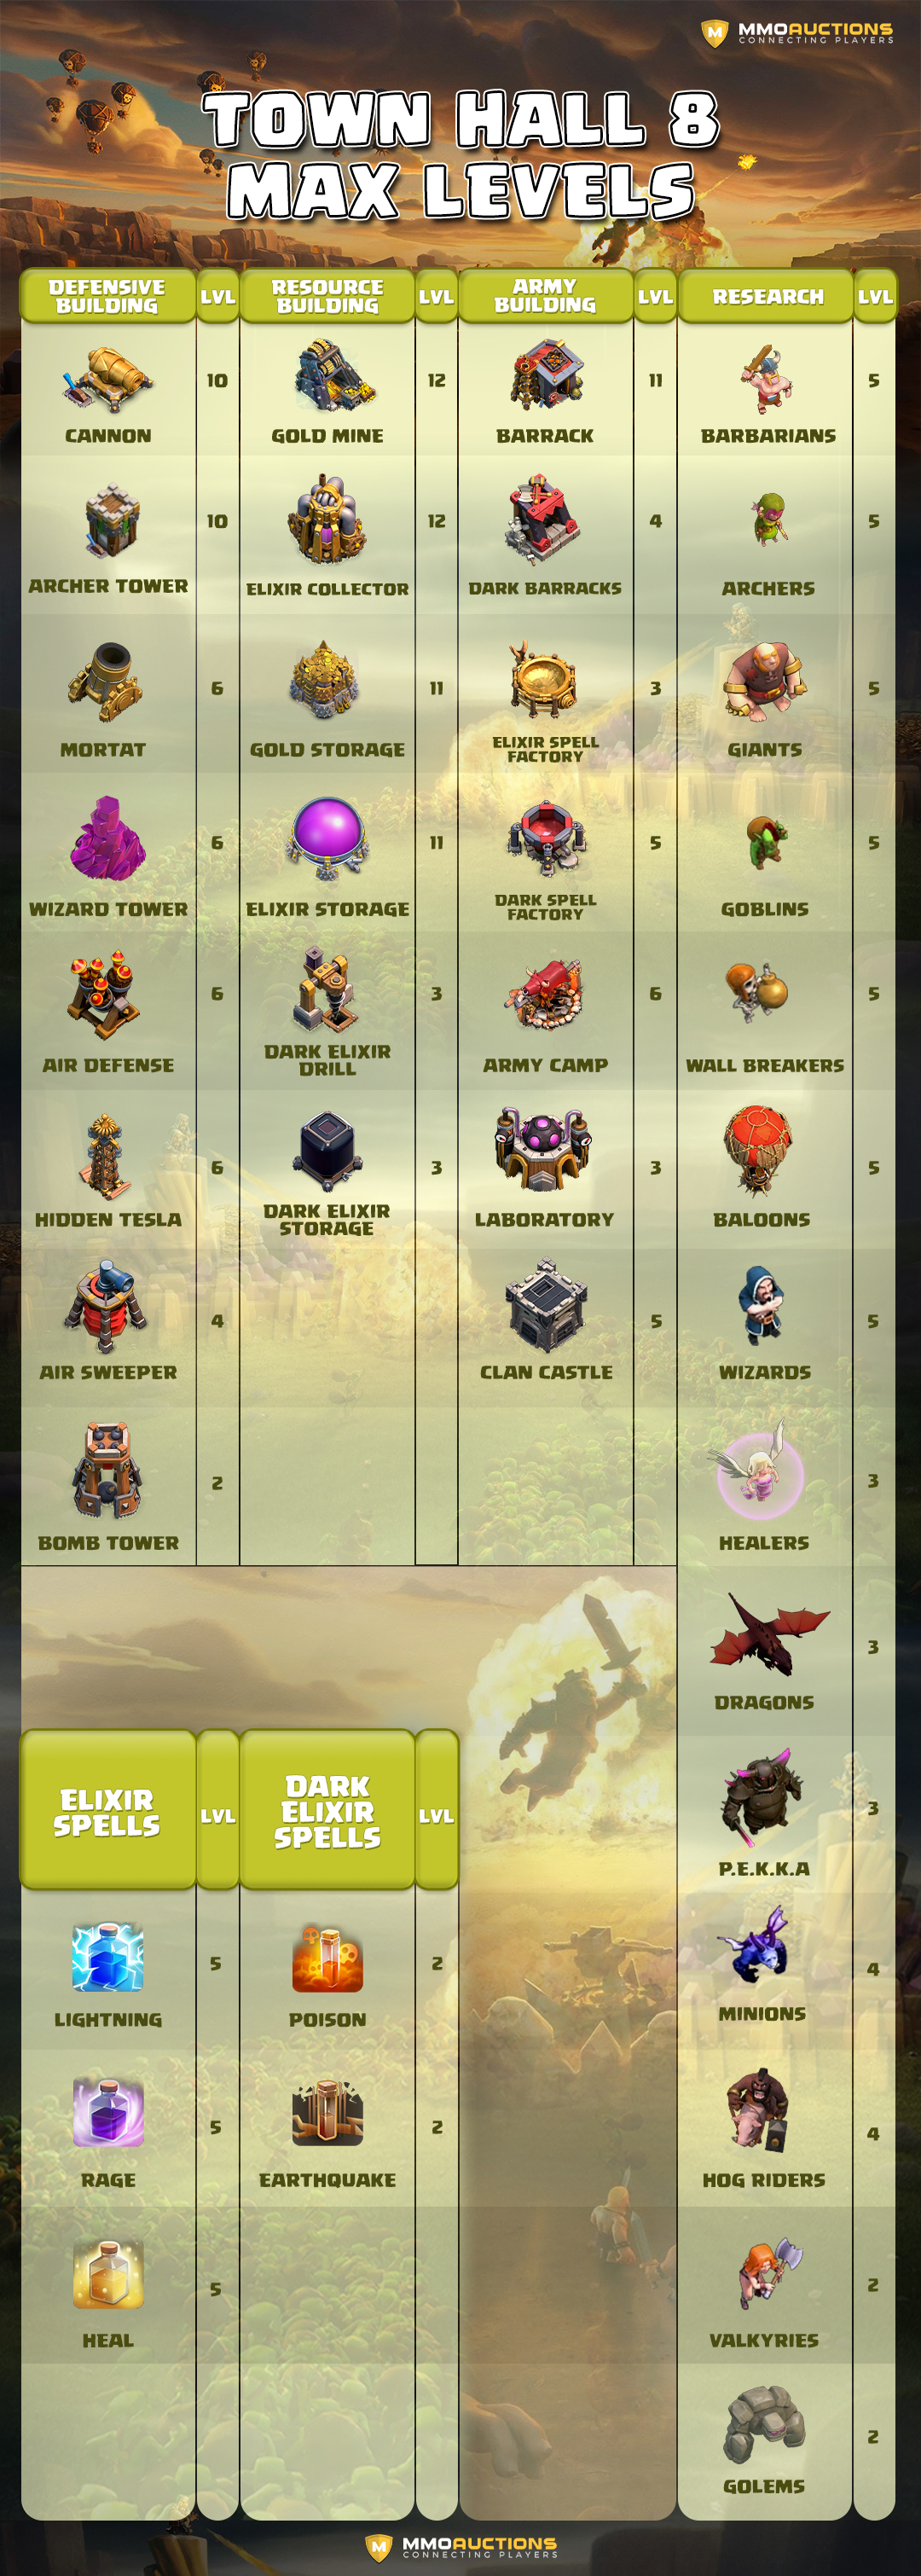 max levels town hall 8